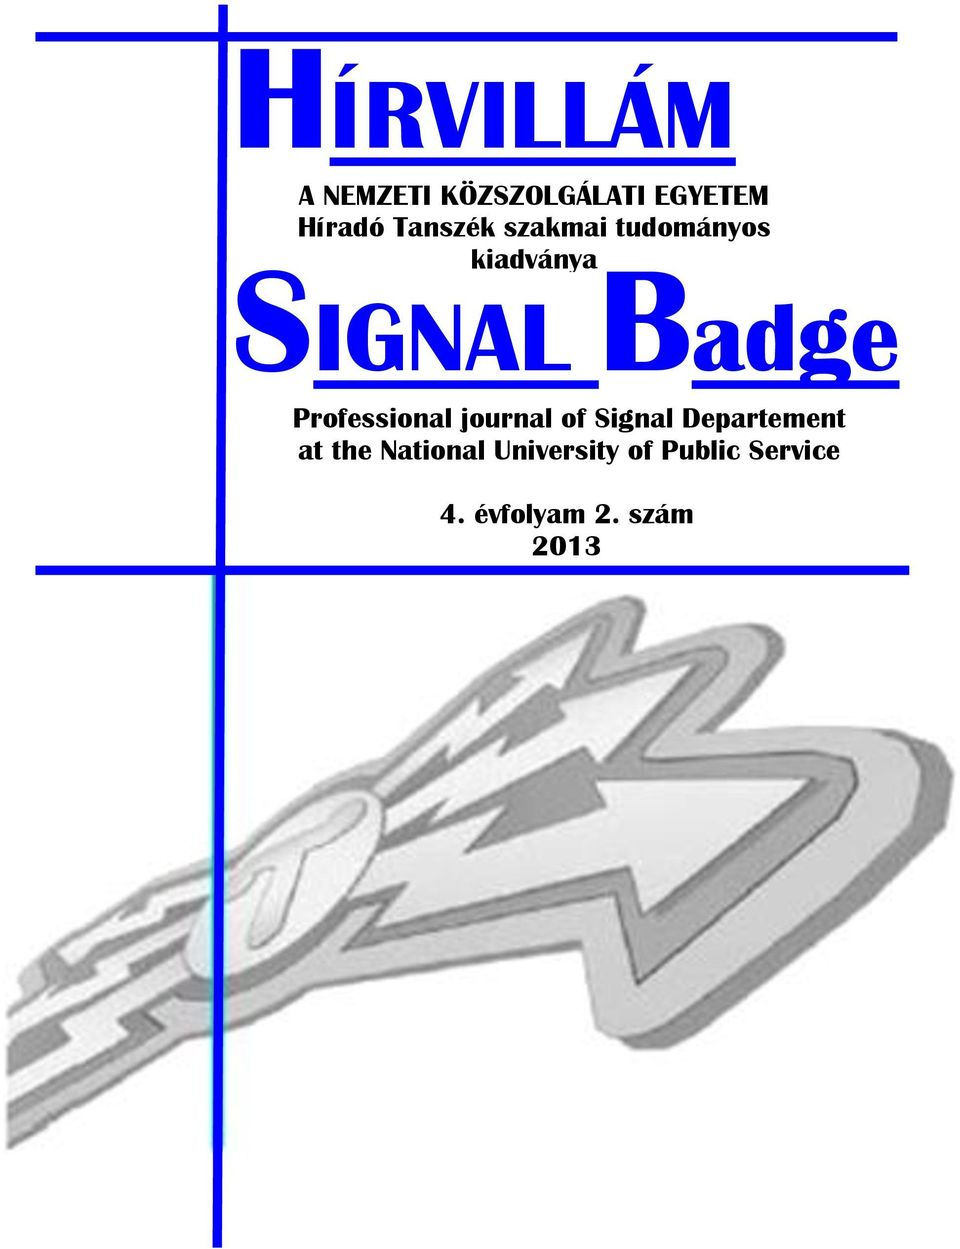 Professional journal of Signal Departement at the